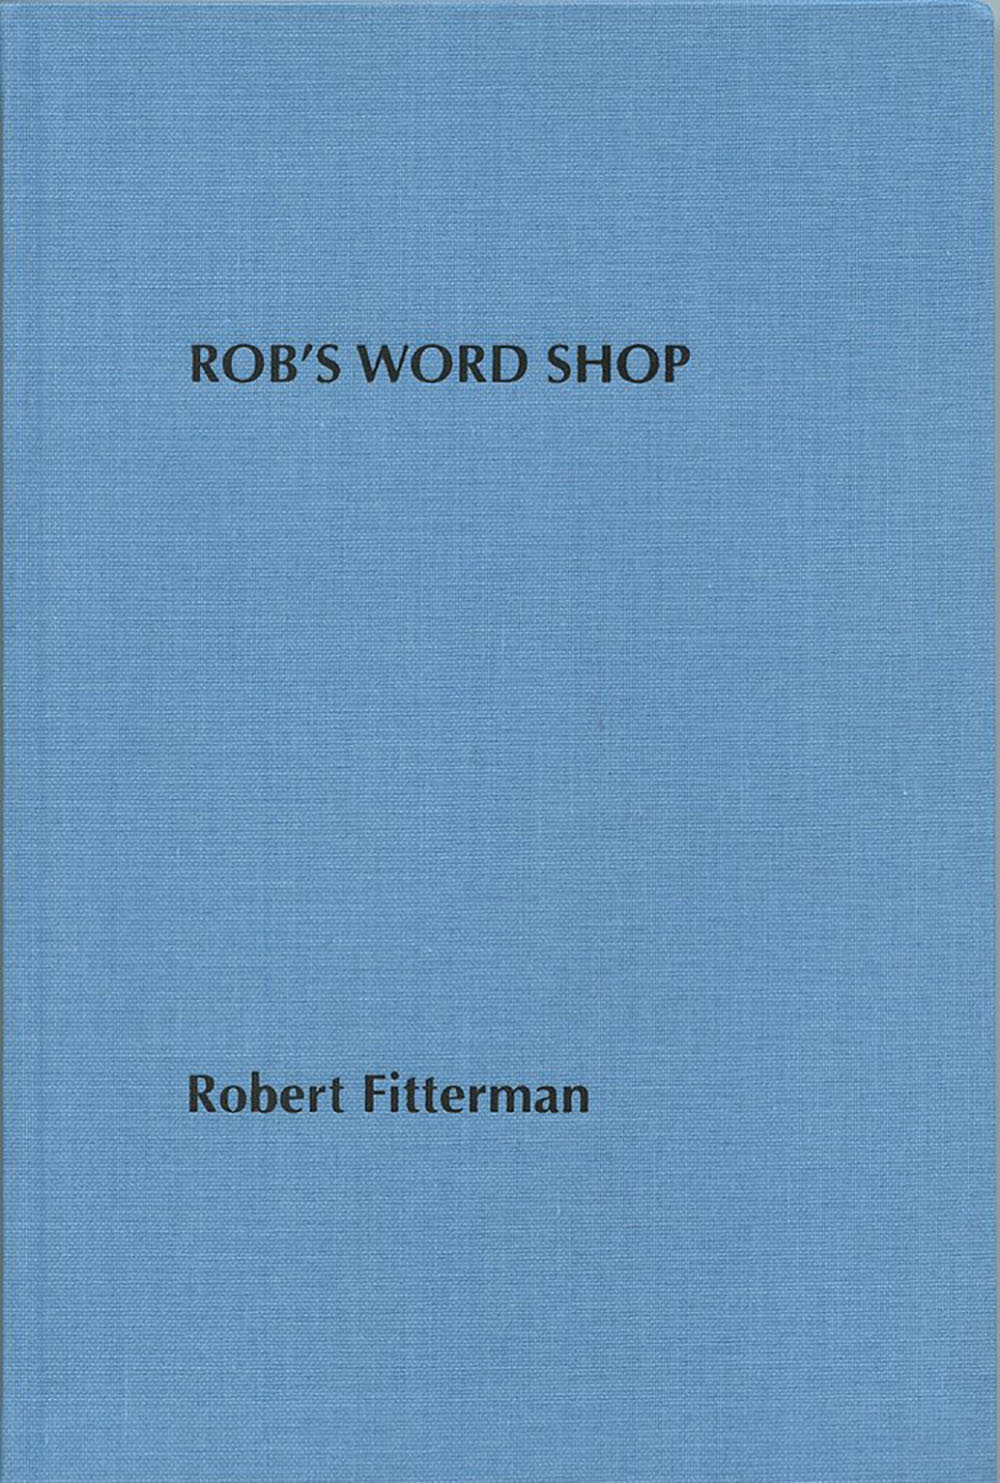 Rob's Word Shop